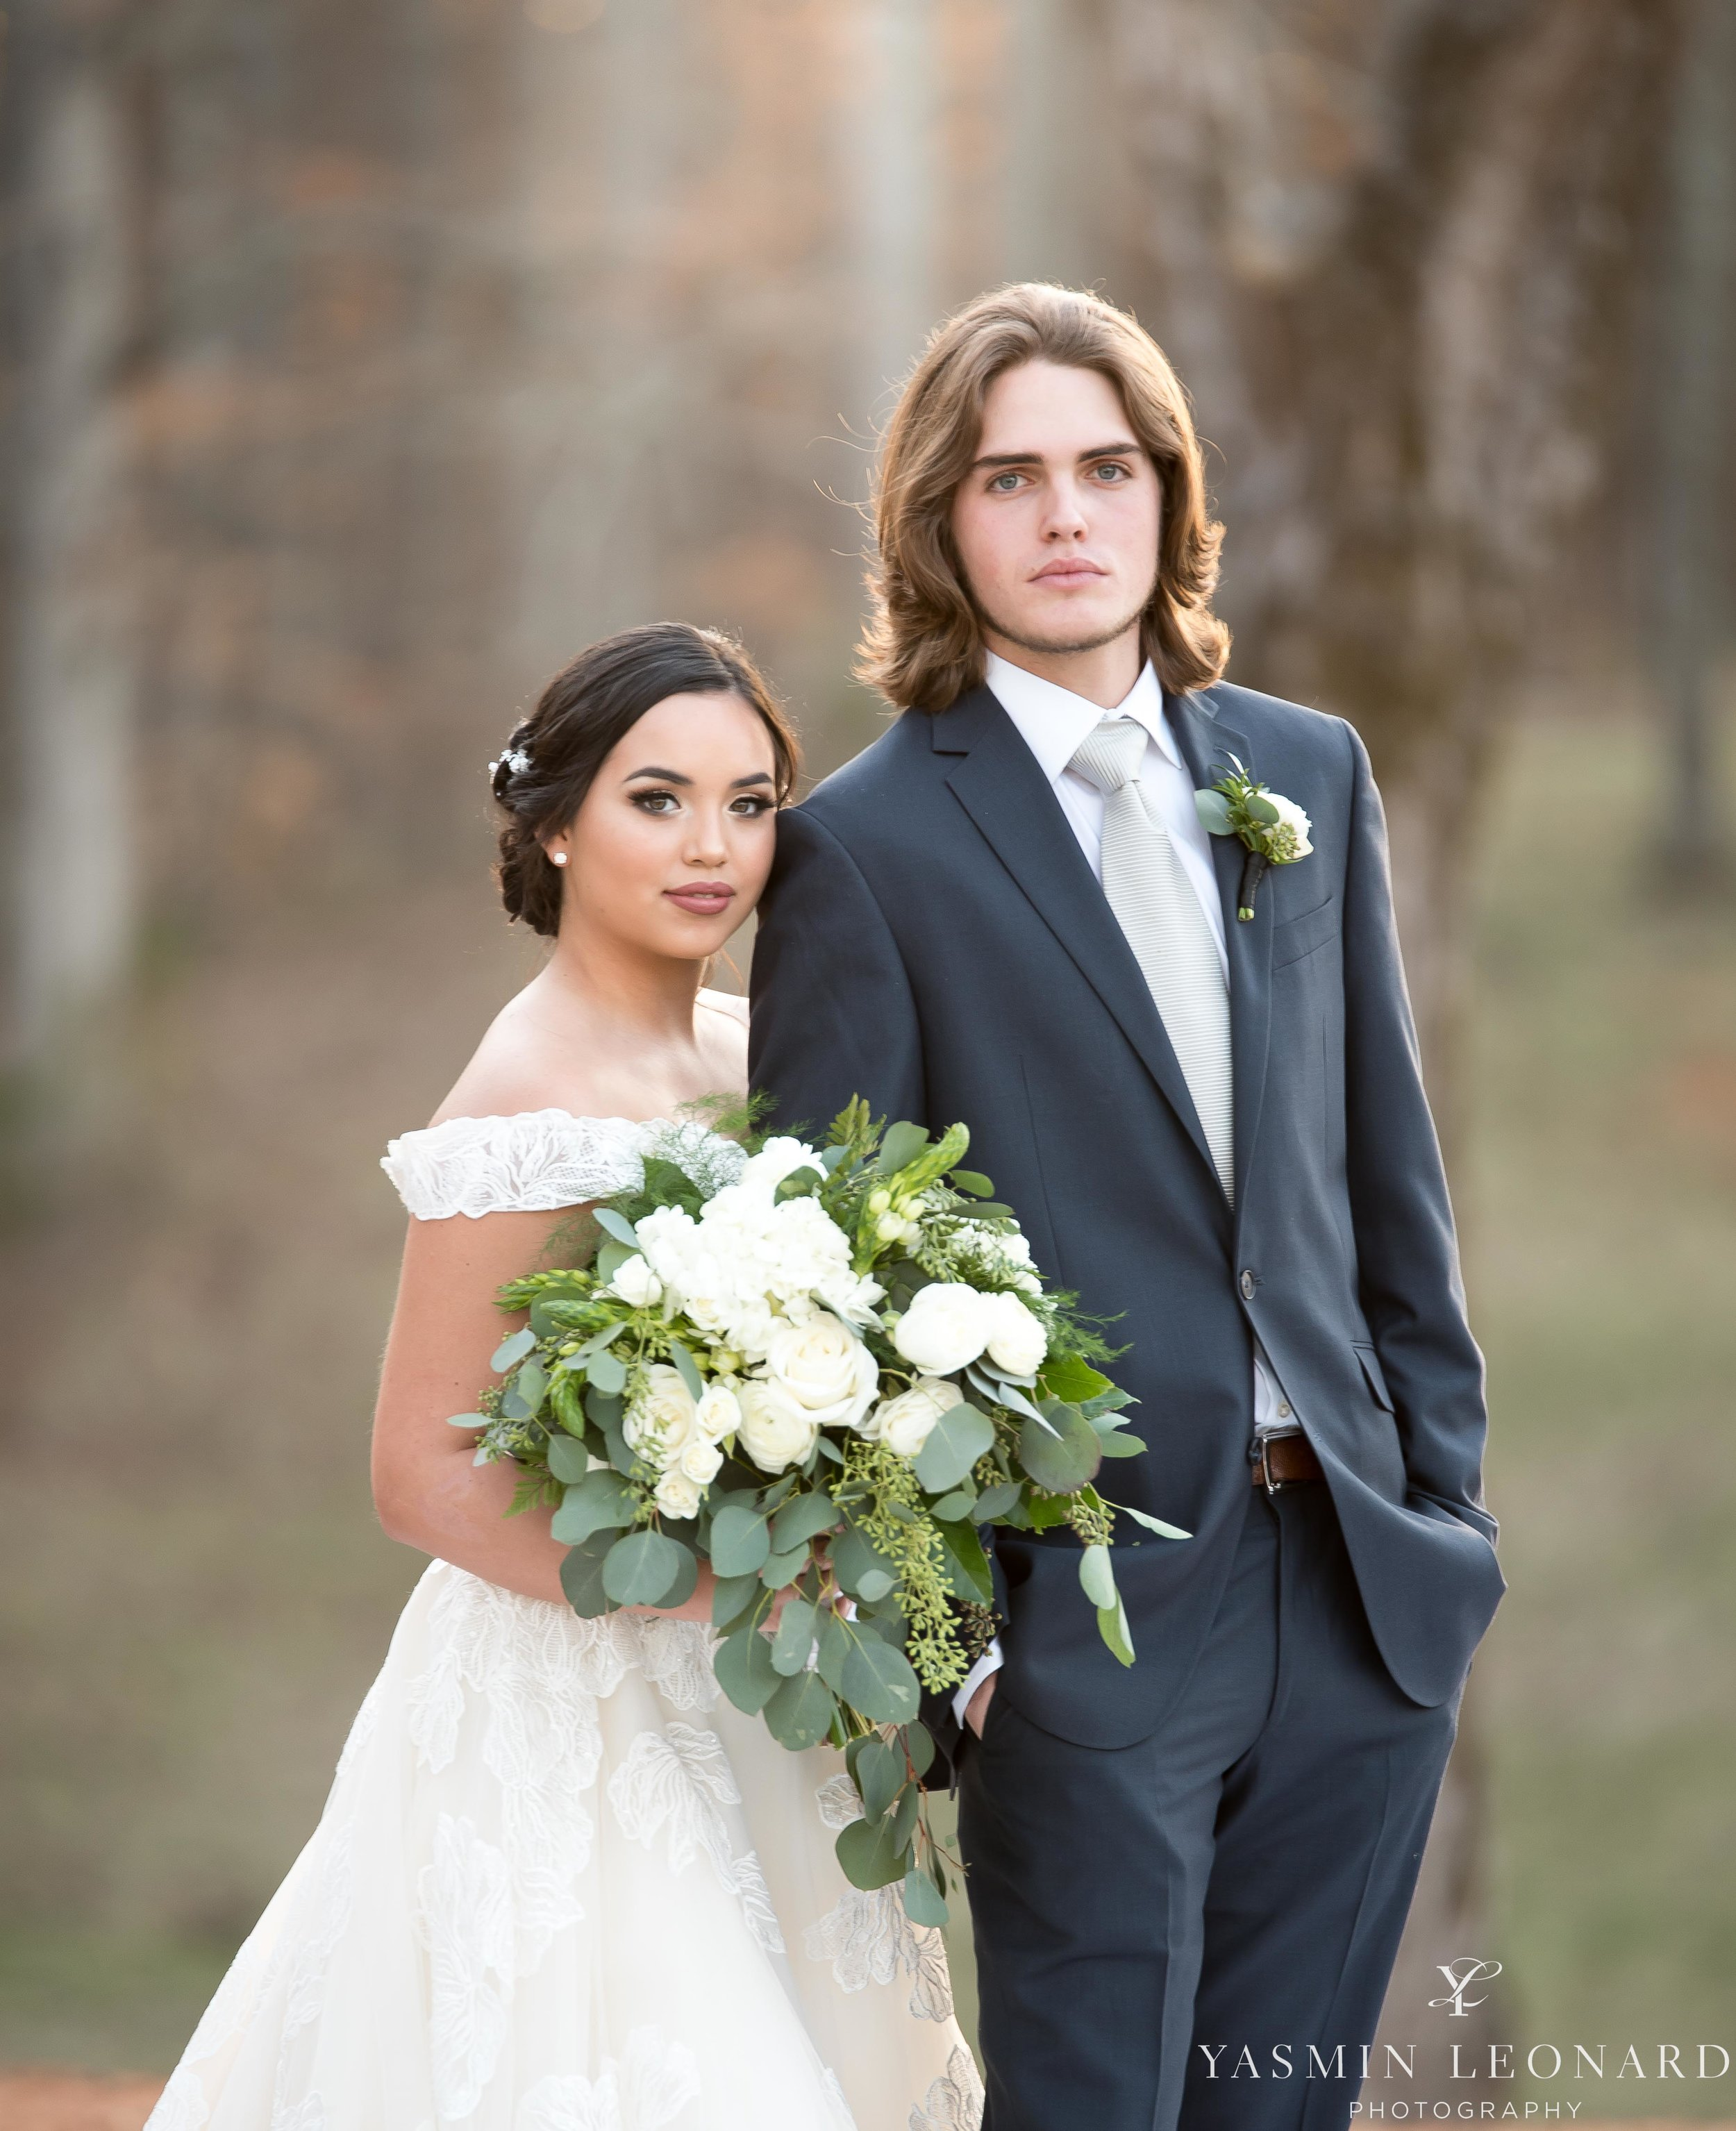 Old Homeplace Vineyard - Grits and Glitter - Dashing Dames Bridal Boutique - Just Priceless - Yasmin Leonard Photography - High Point Weddings - NC Weddings - NC Wedding Venues - High Point Jewelers - NC Wines - NC Vineyards - Cupcake Cuties-95.jpg